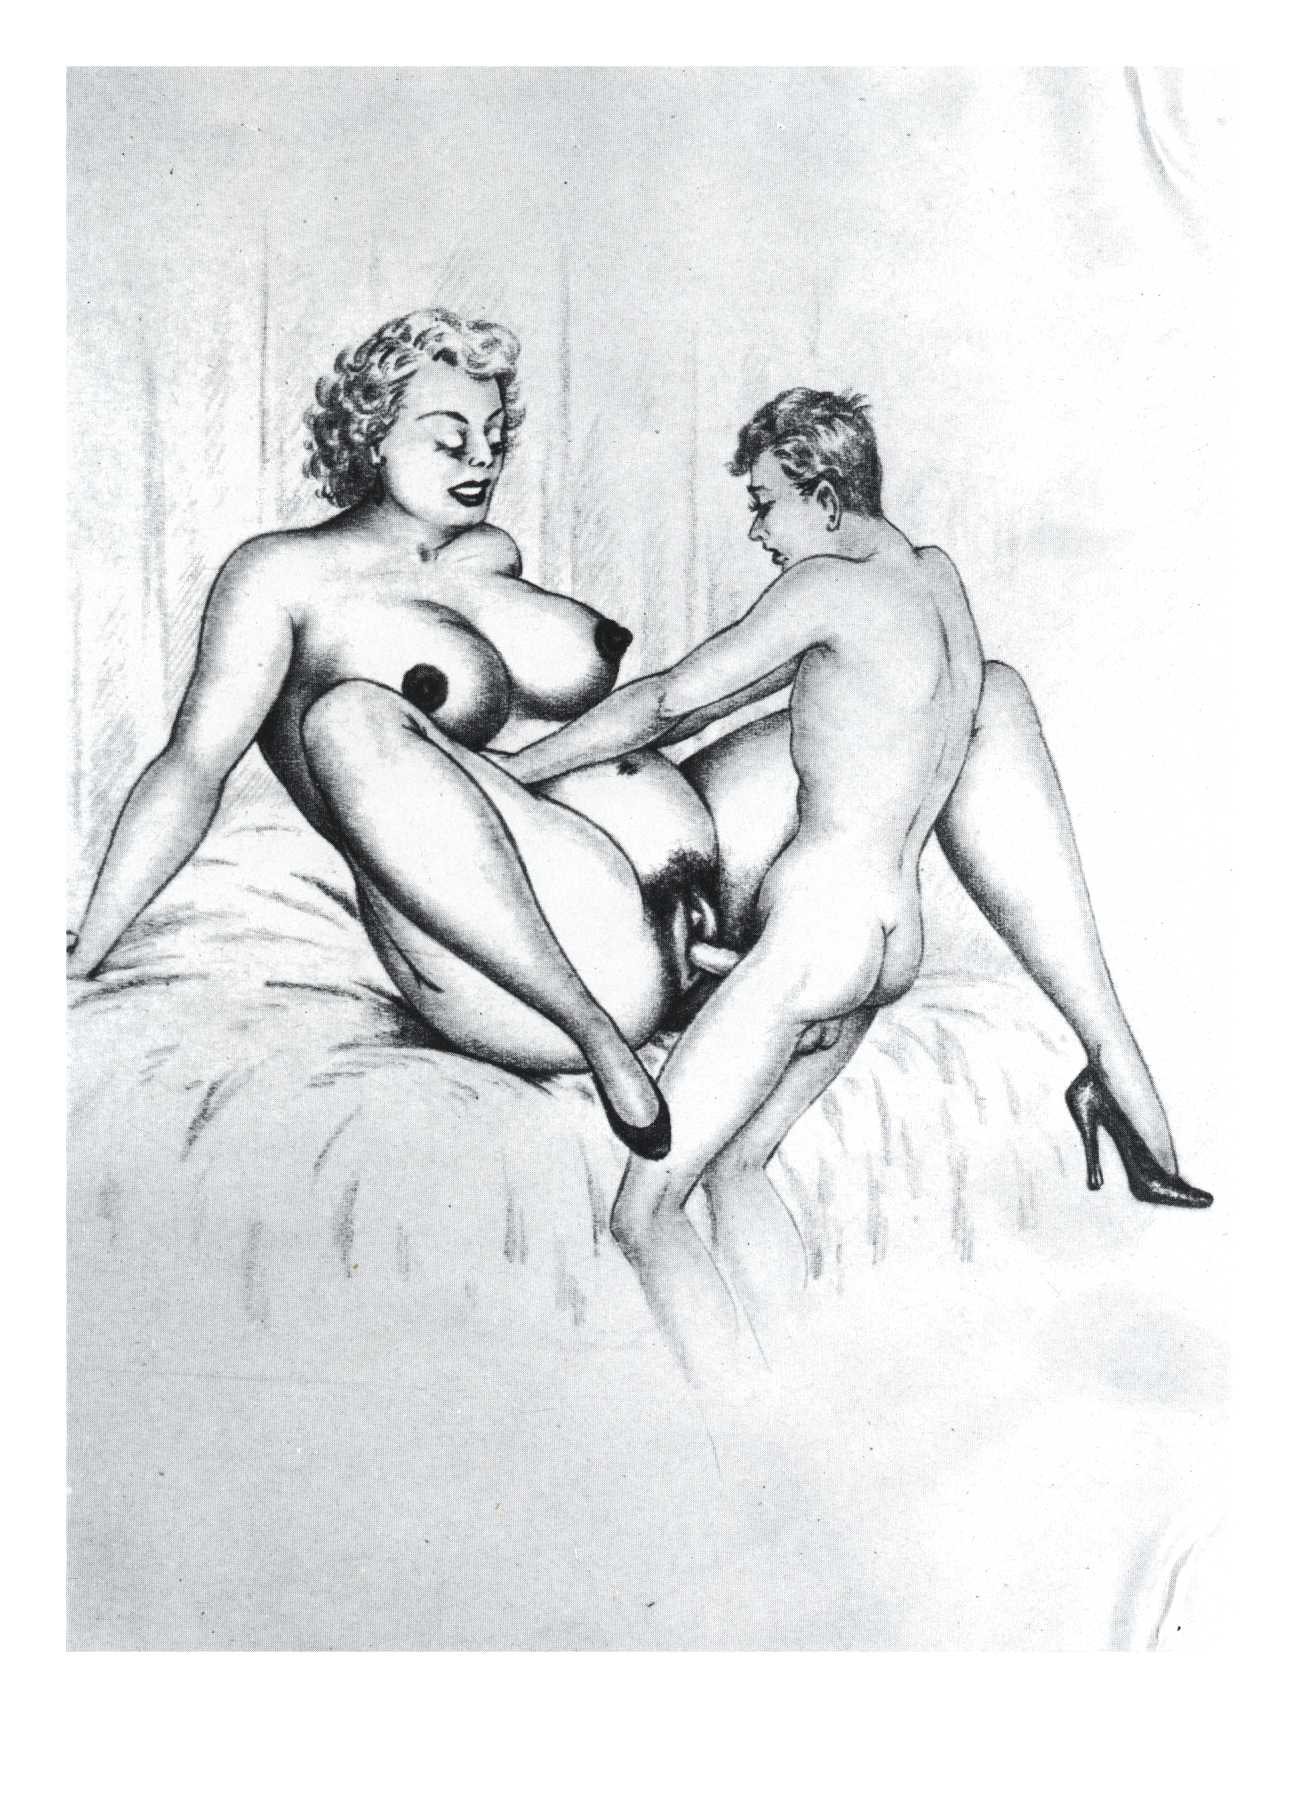 Bw porn drawings sketches nackt galleries